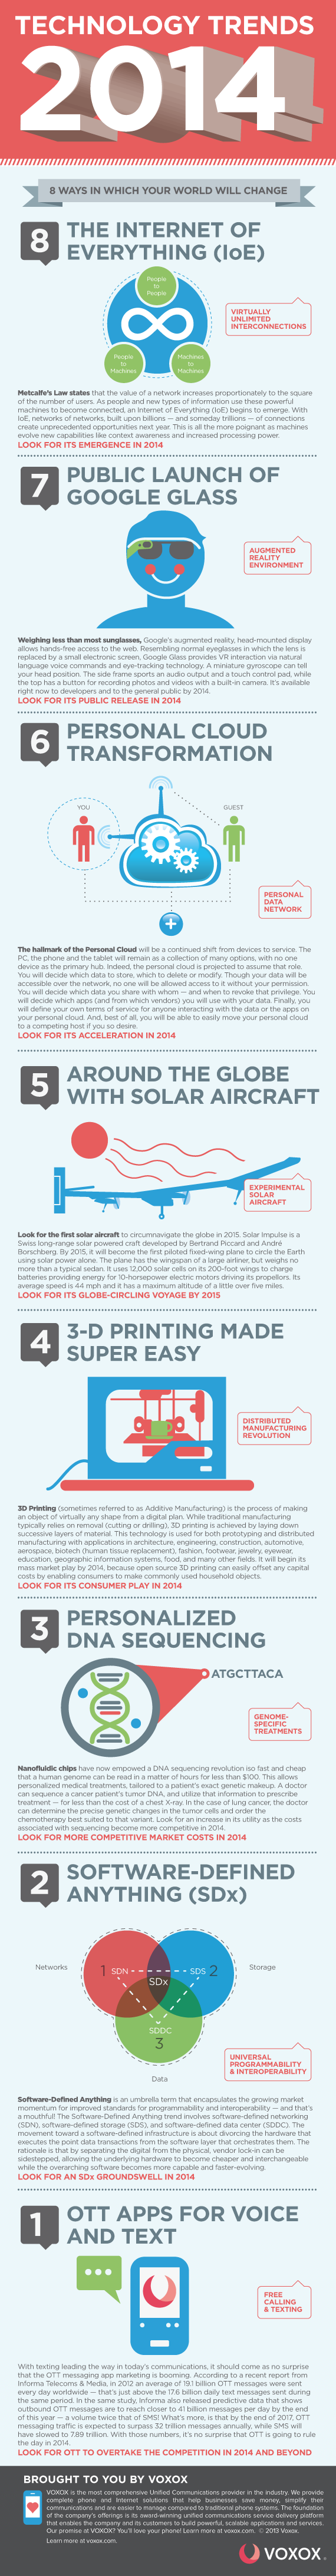 2014 Technology Trends Infographic